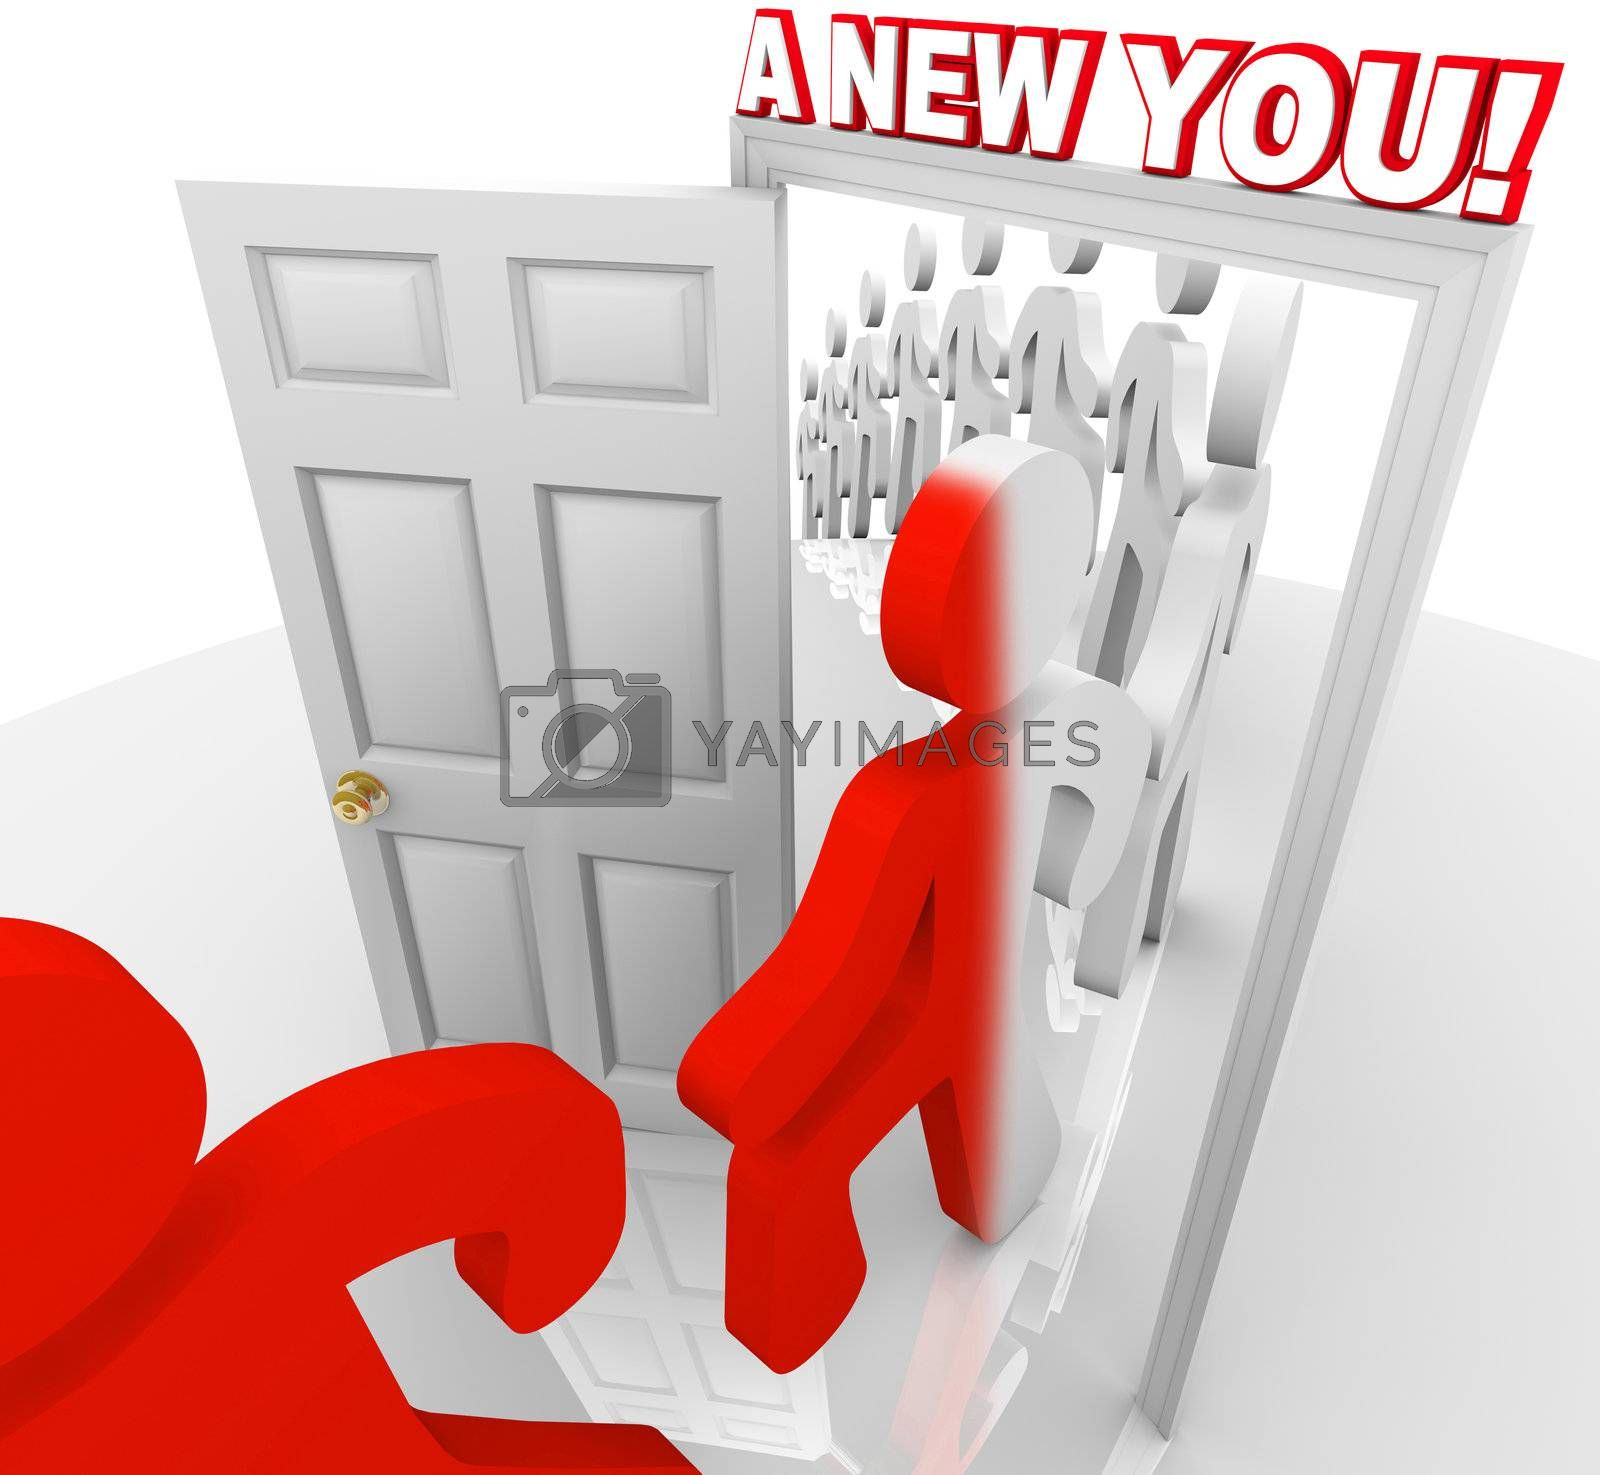 Several people walk through a doorway marked A New You, representing the self-improvement and reinvention that can happen when you set out to improve yourself through educaiton or other forms of motivation and attitude adjustment